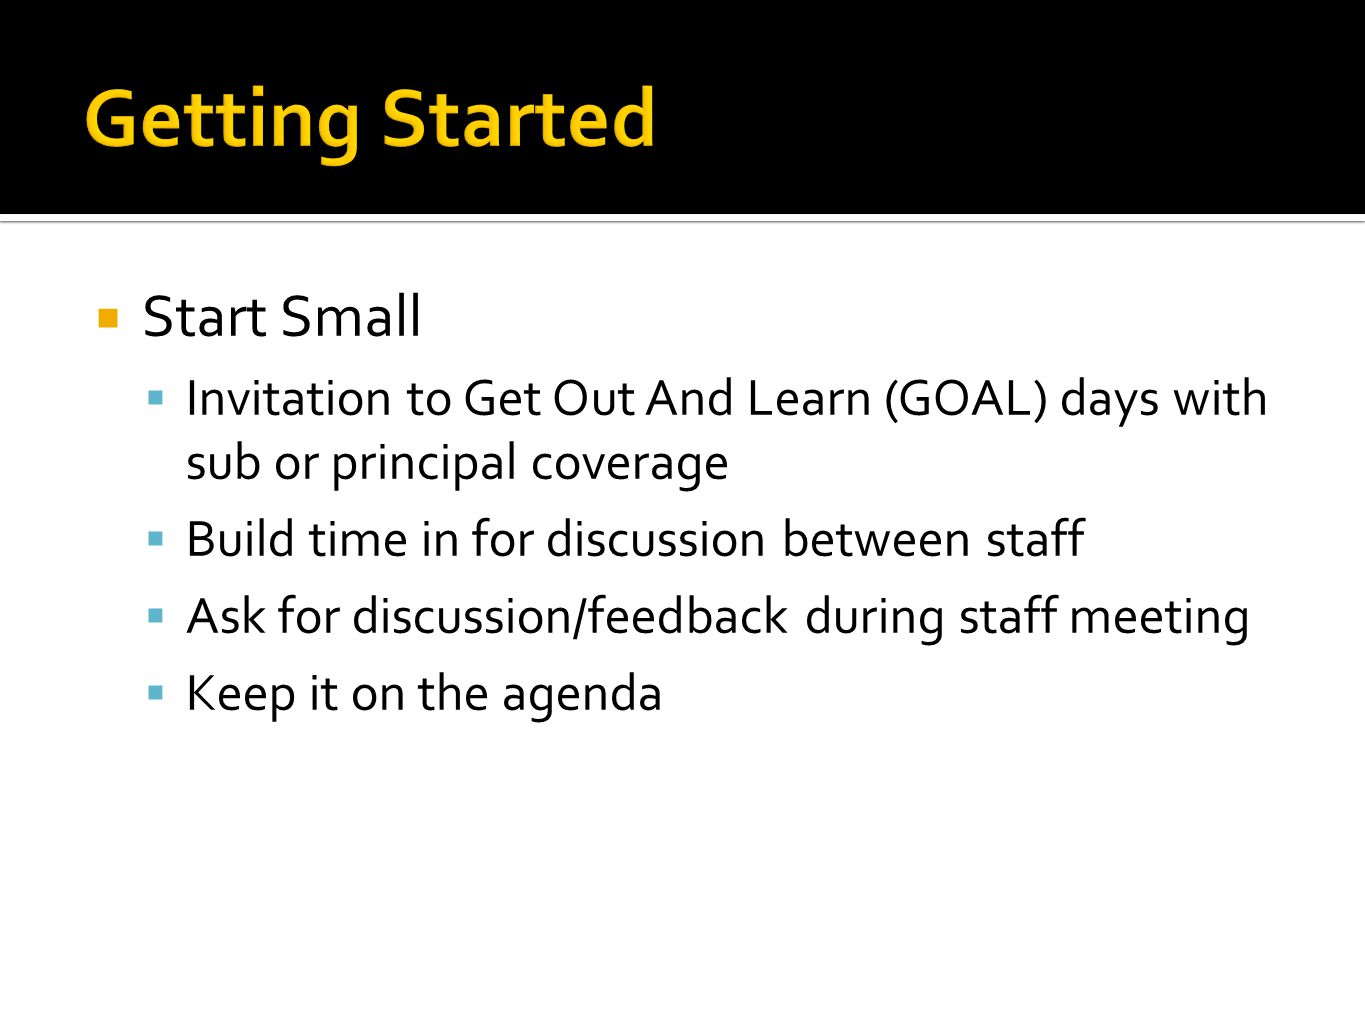  Start Small  Invitation to Get Out And Learn (GOAL) days with sub or principal coverage  Build time in for discussion between staff  Ask for disc